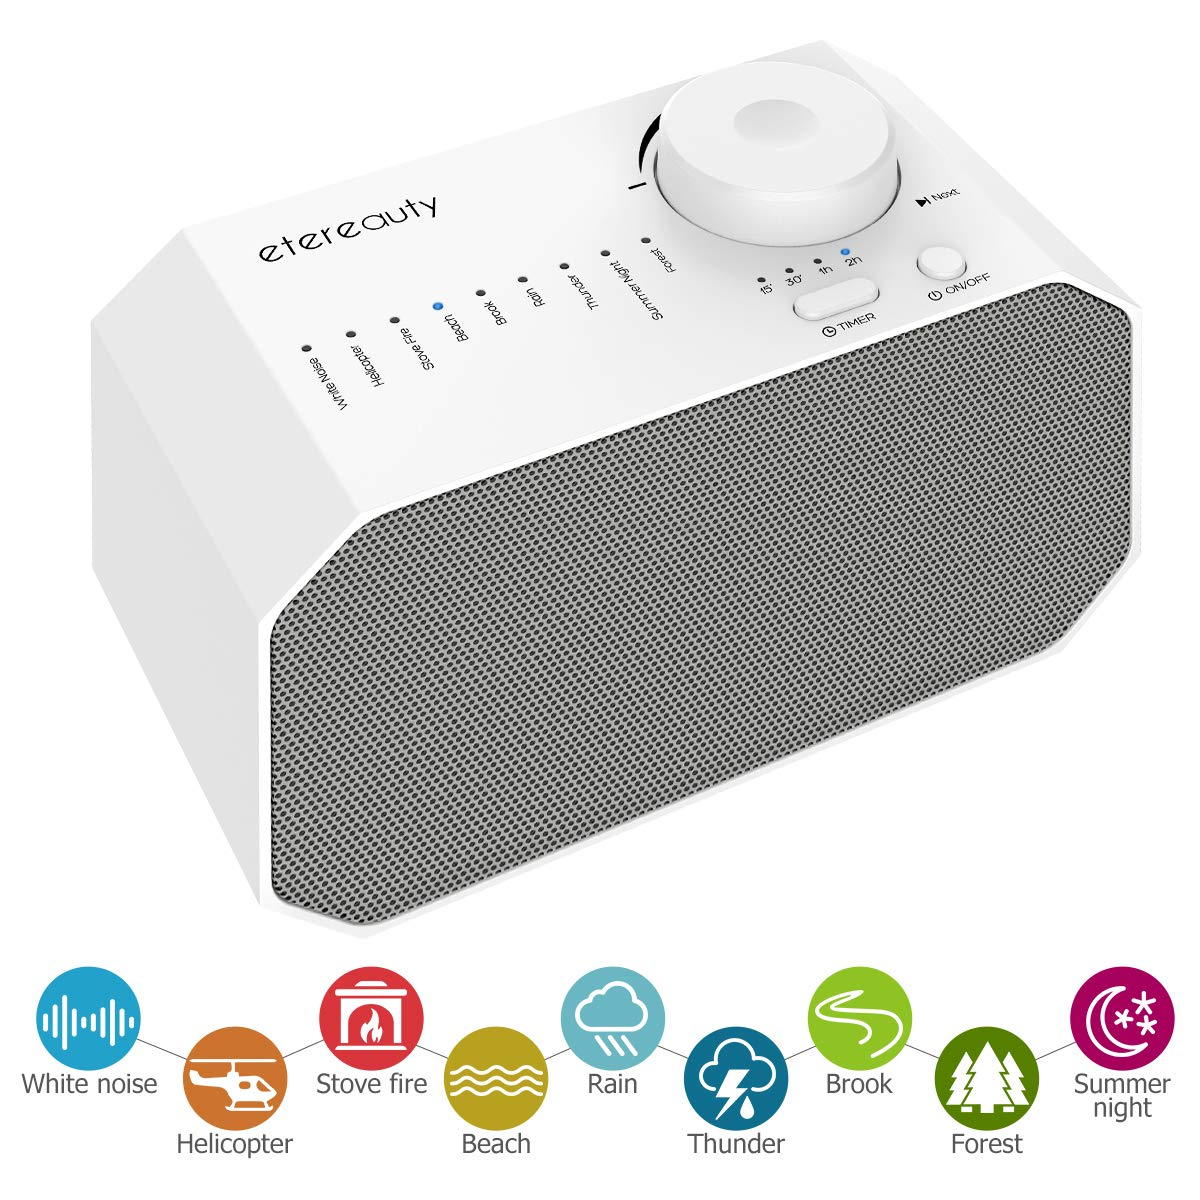 White Noise Machine for Sleeping & Relaxation, ETEREAUTY Sound Machine for Baby/Kids/Adults with 9 Soothing All-Natural Sounds, Auto-Off Timer and USB Output Charger for Home, Office or Travel, White by ETEREAUTY